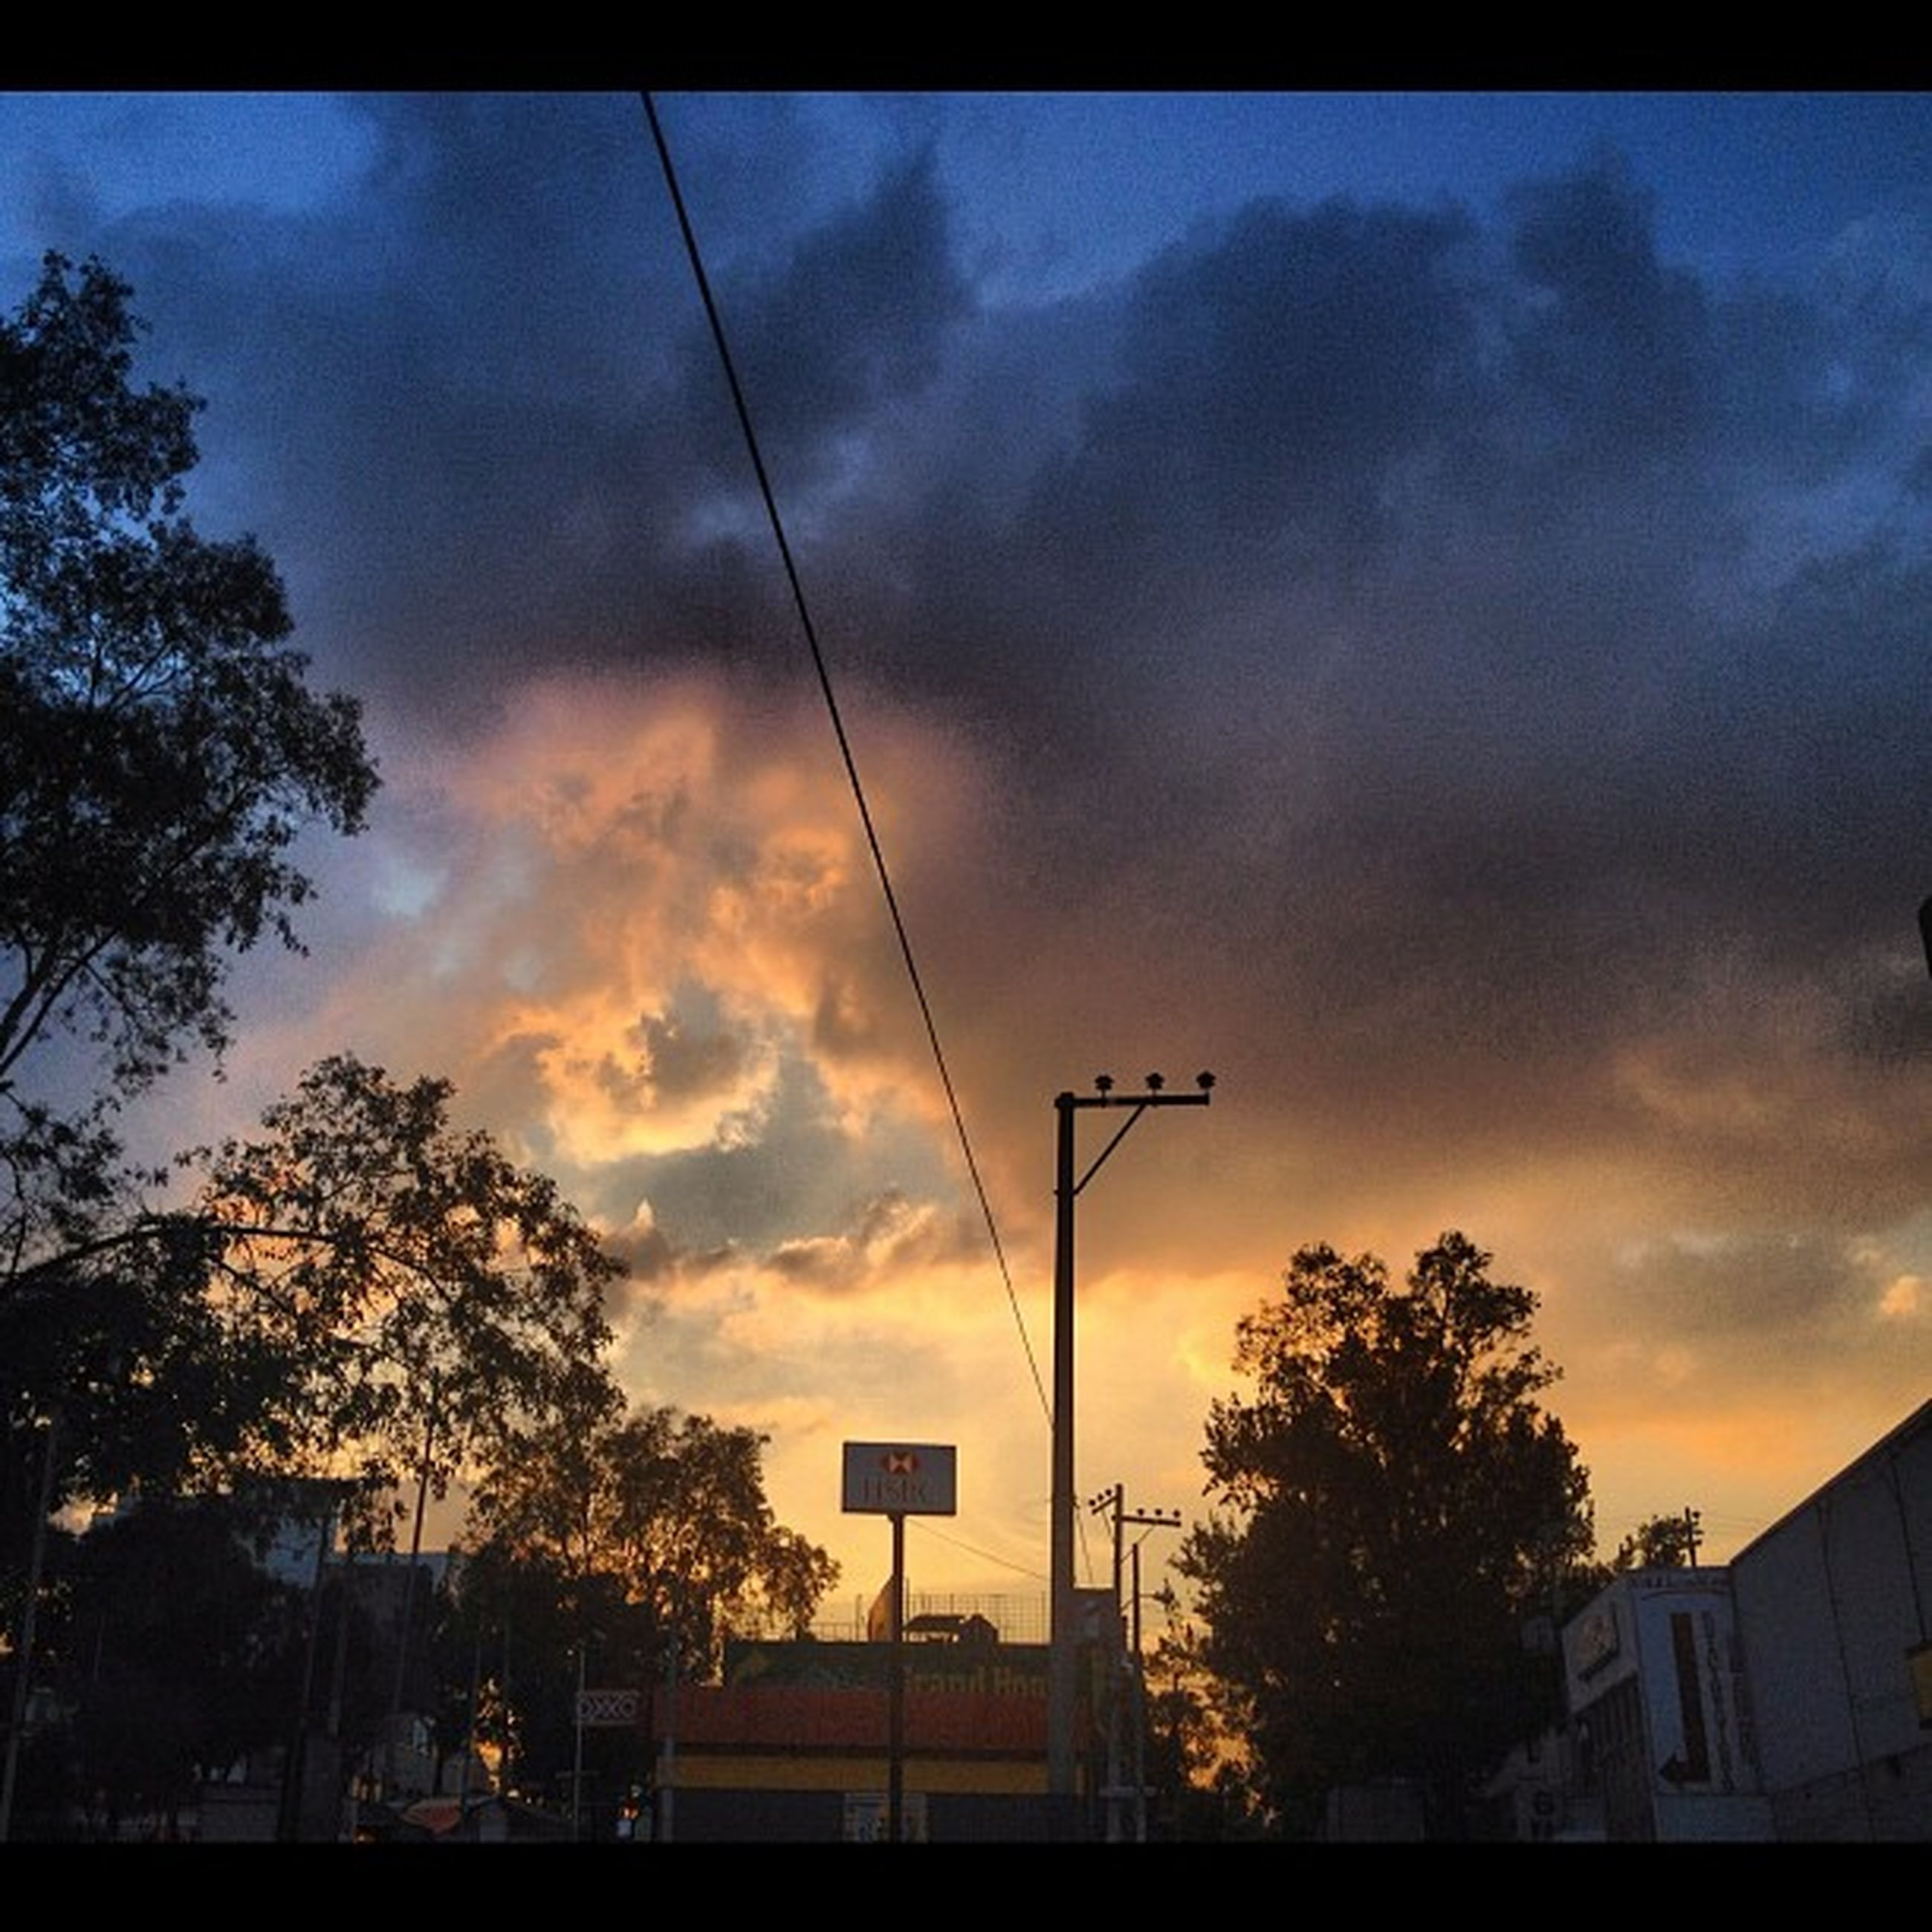 sky, silhouette, tree, power line, sunset, cloud - sky, low angle view, building exterior, built structure, architecture, electricity pylon, cloudy, electricity, power supply, cable, cloud, fuel and power generation, house, dusk, connection